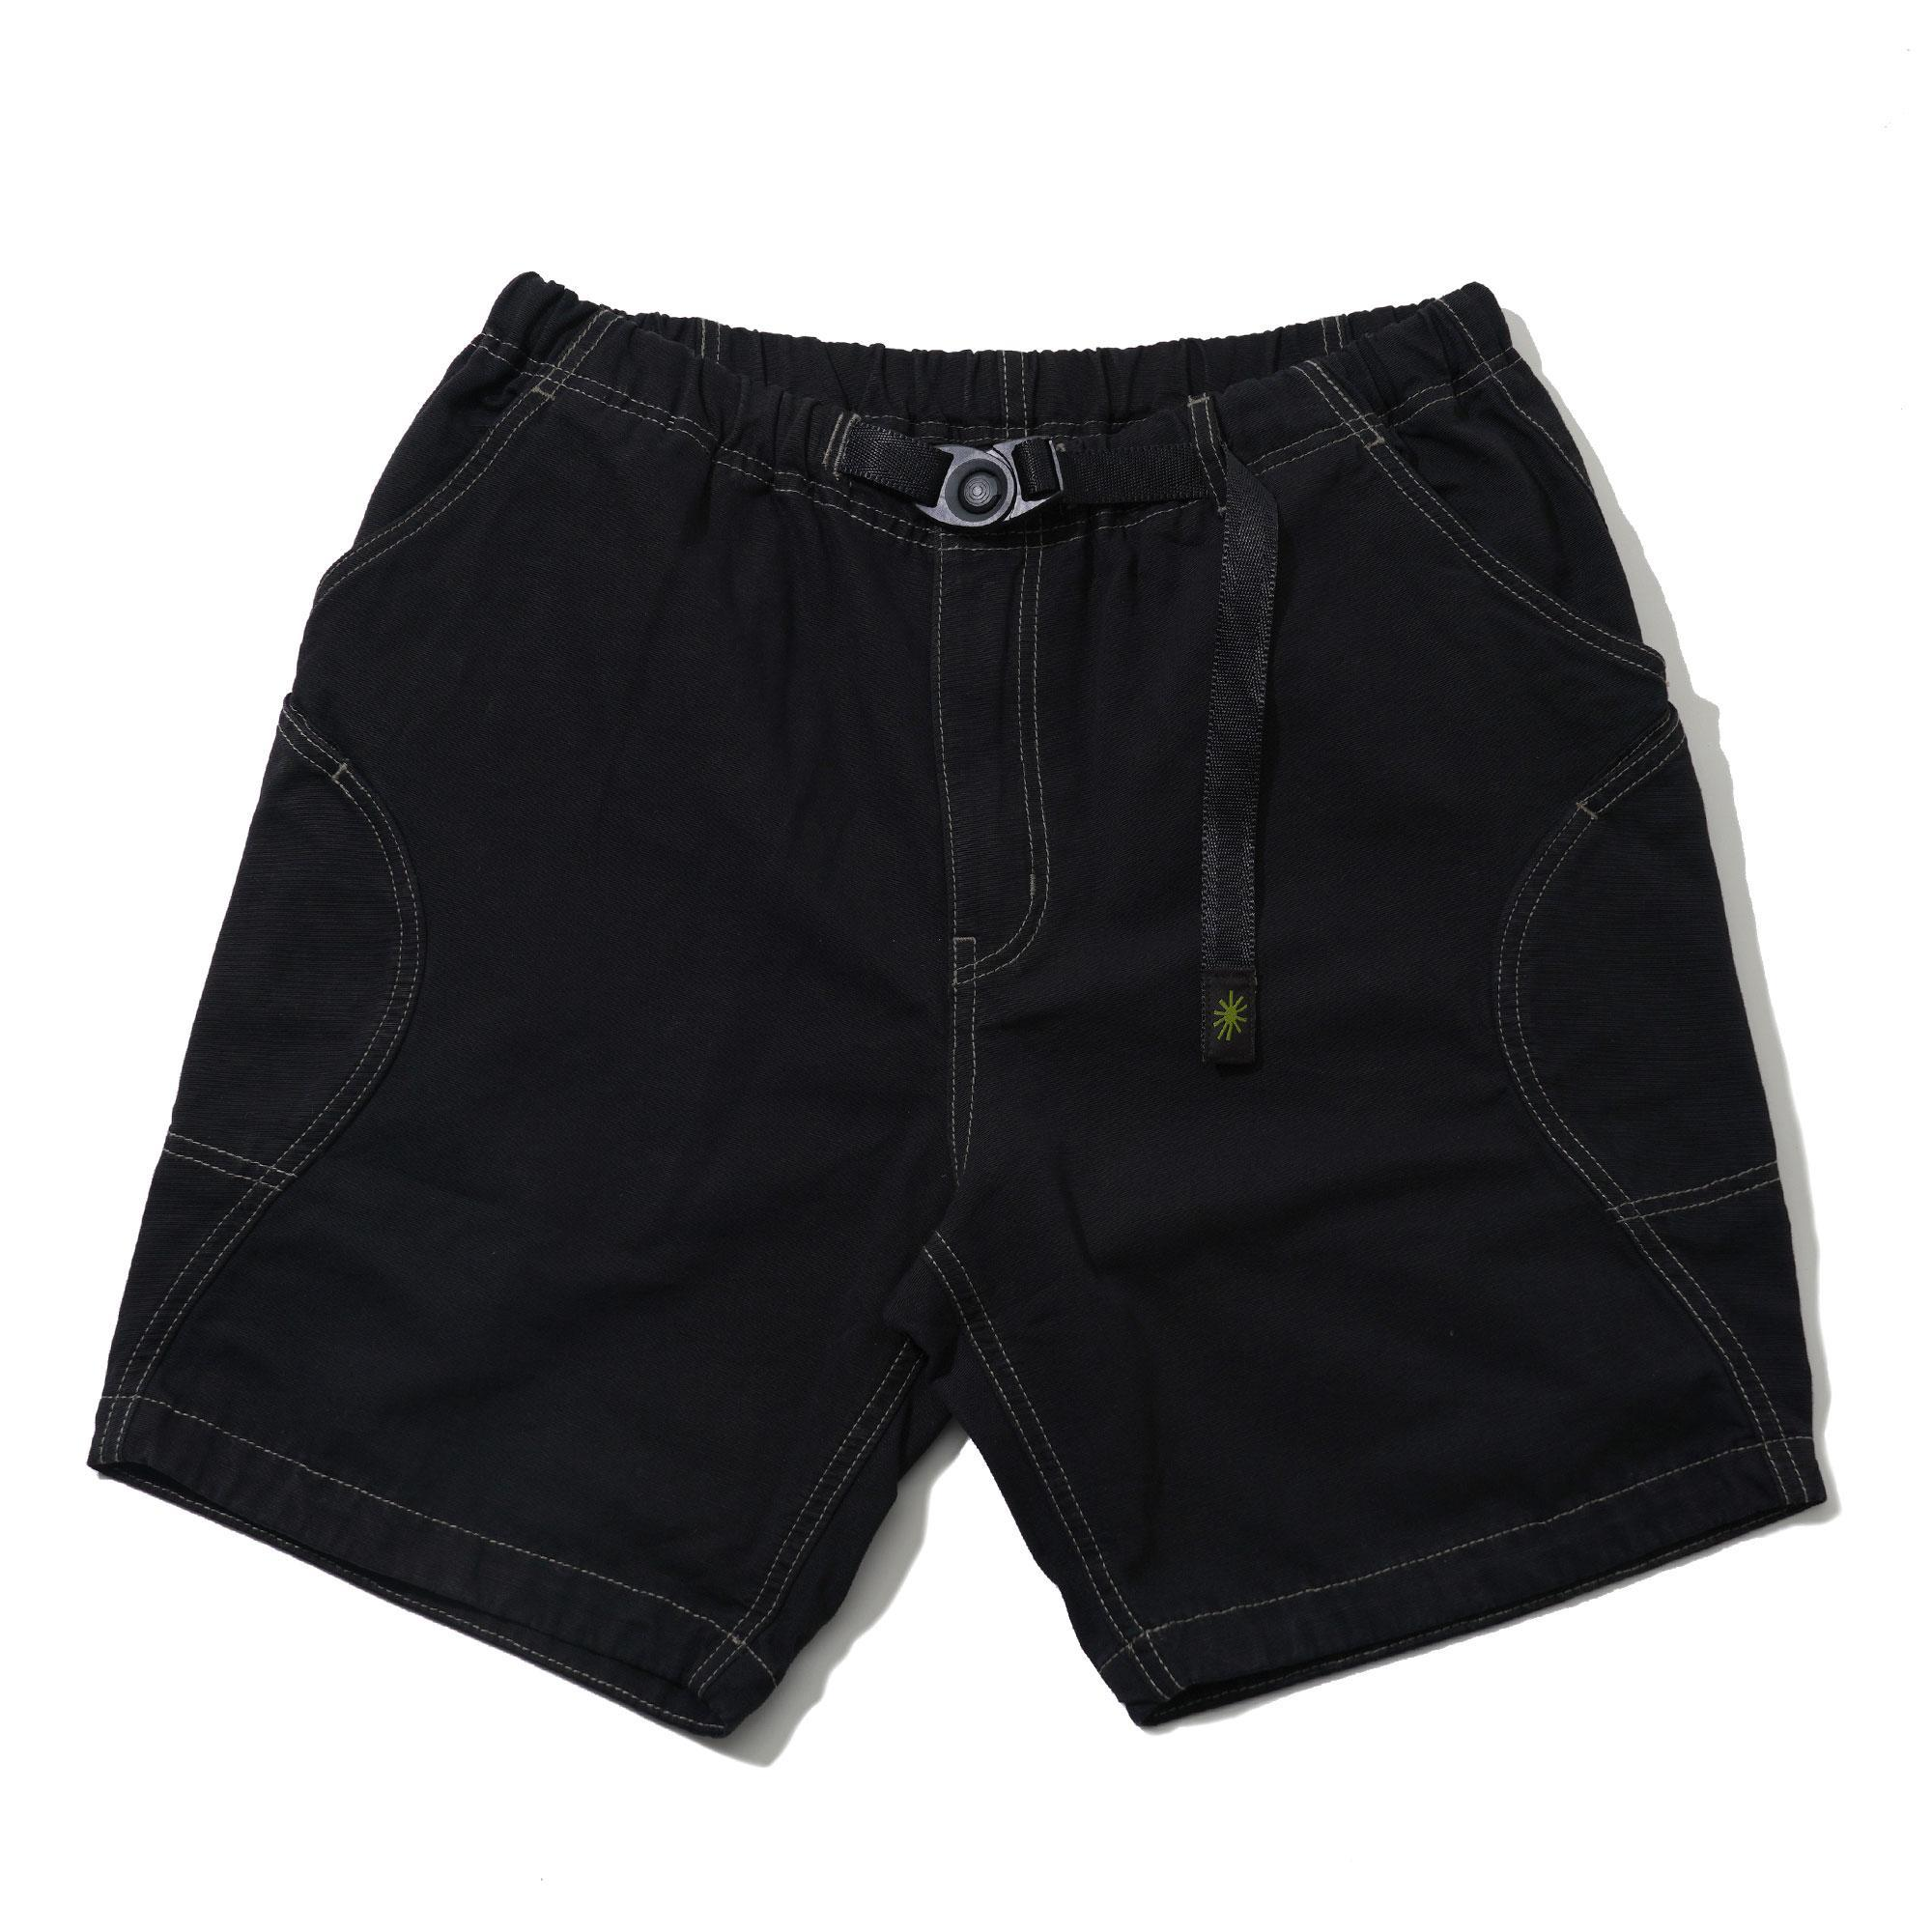 HIGH EXPLORER SHORTS/H/C GROSGRAIN